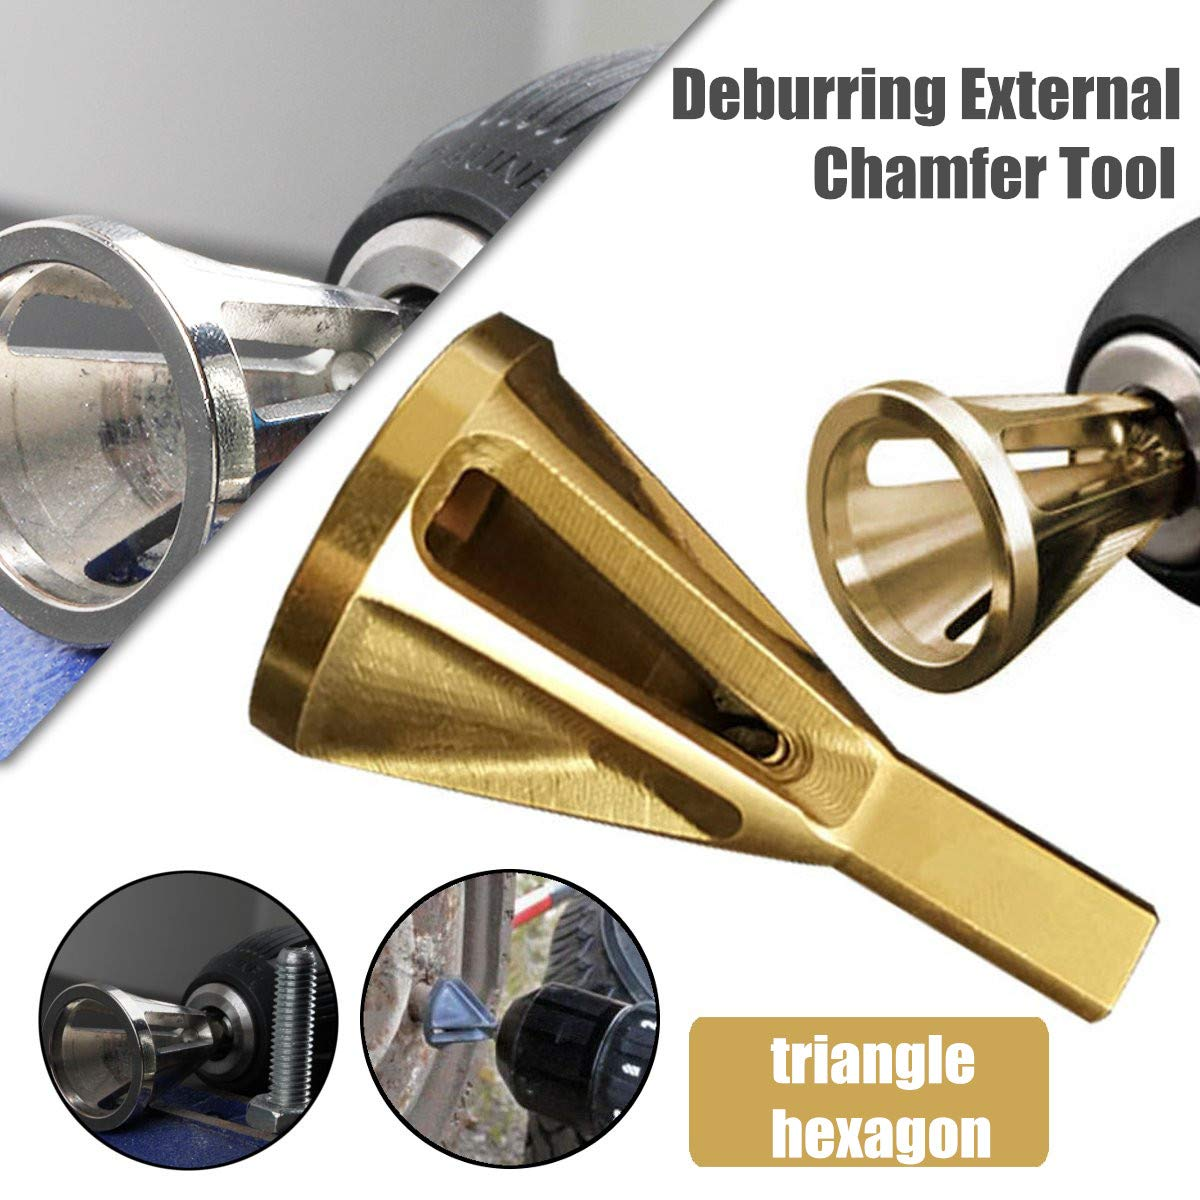 black//sliver//golden Deburring External Uniburr Chamfer Tool Stainless Steel Remove Burr Tools for Drill Bit Quickly Repairs Damaged Size 8-32 Bolts